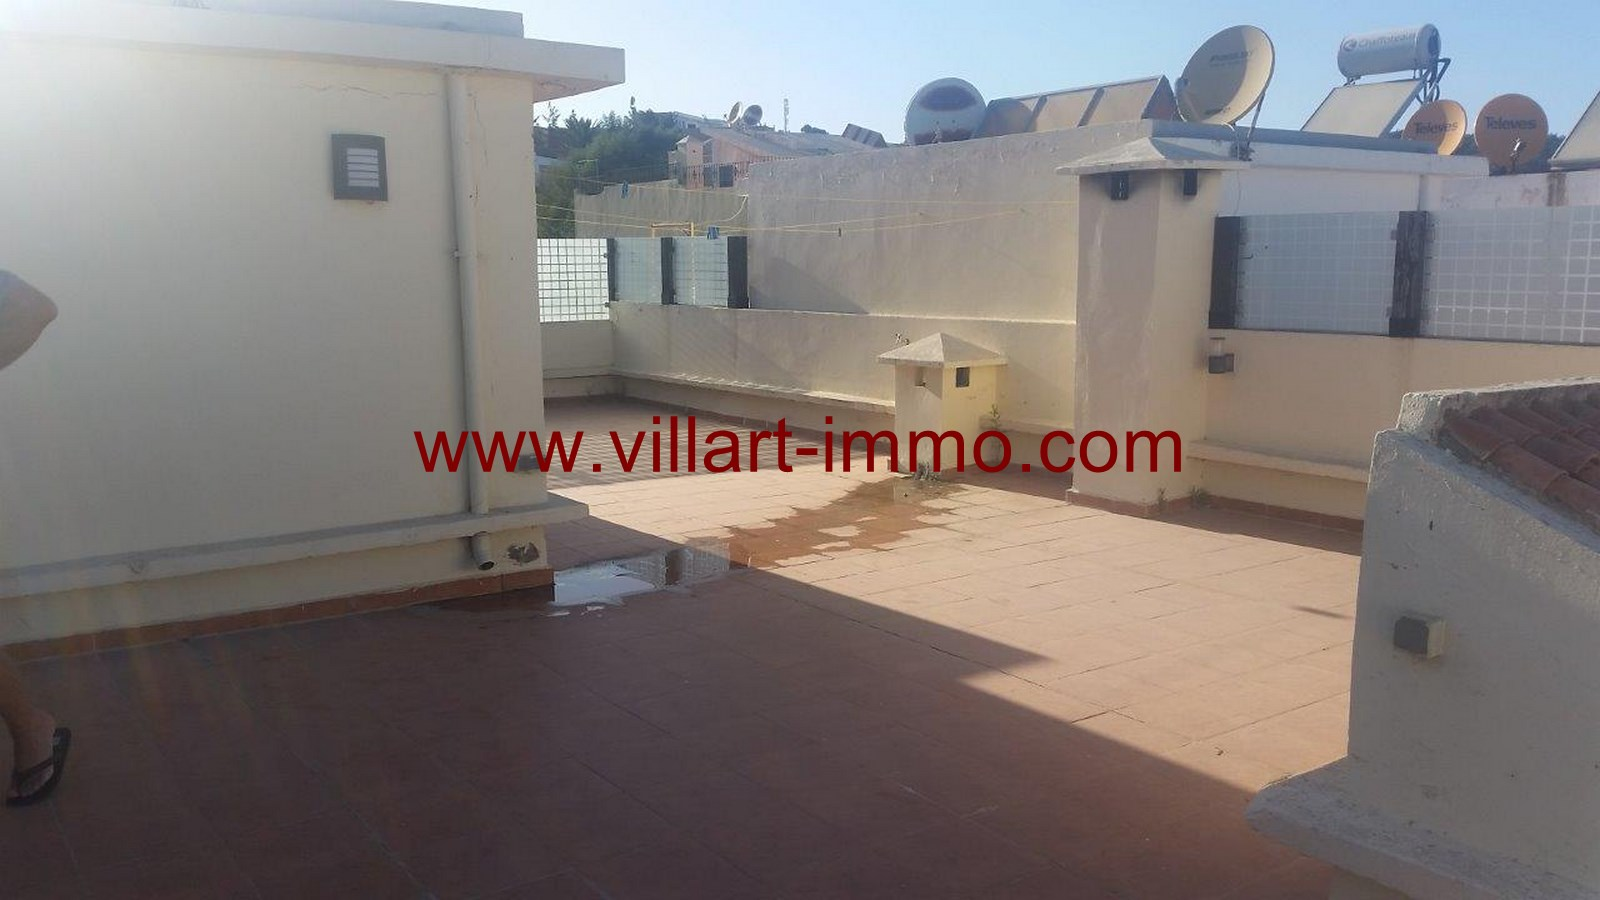 21-To Let-Villa-Furnished-Tangier-Terrace -LSTV986-Villart-Immo